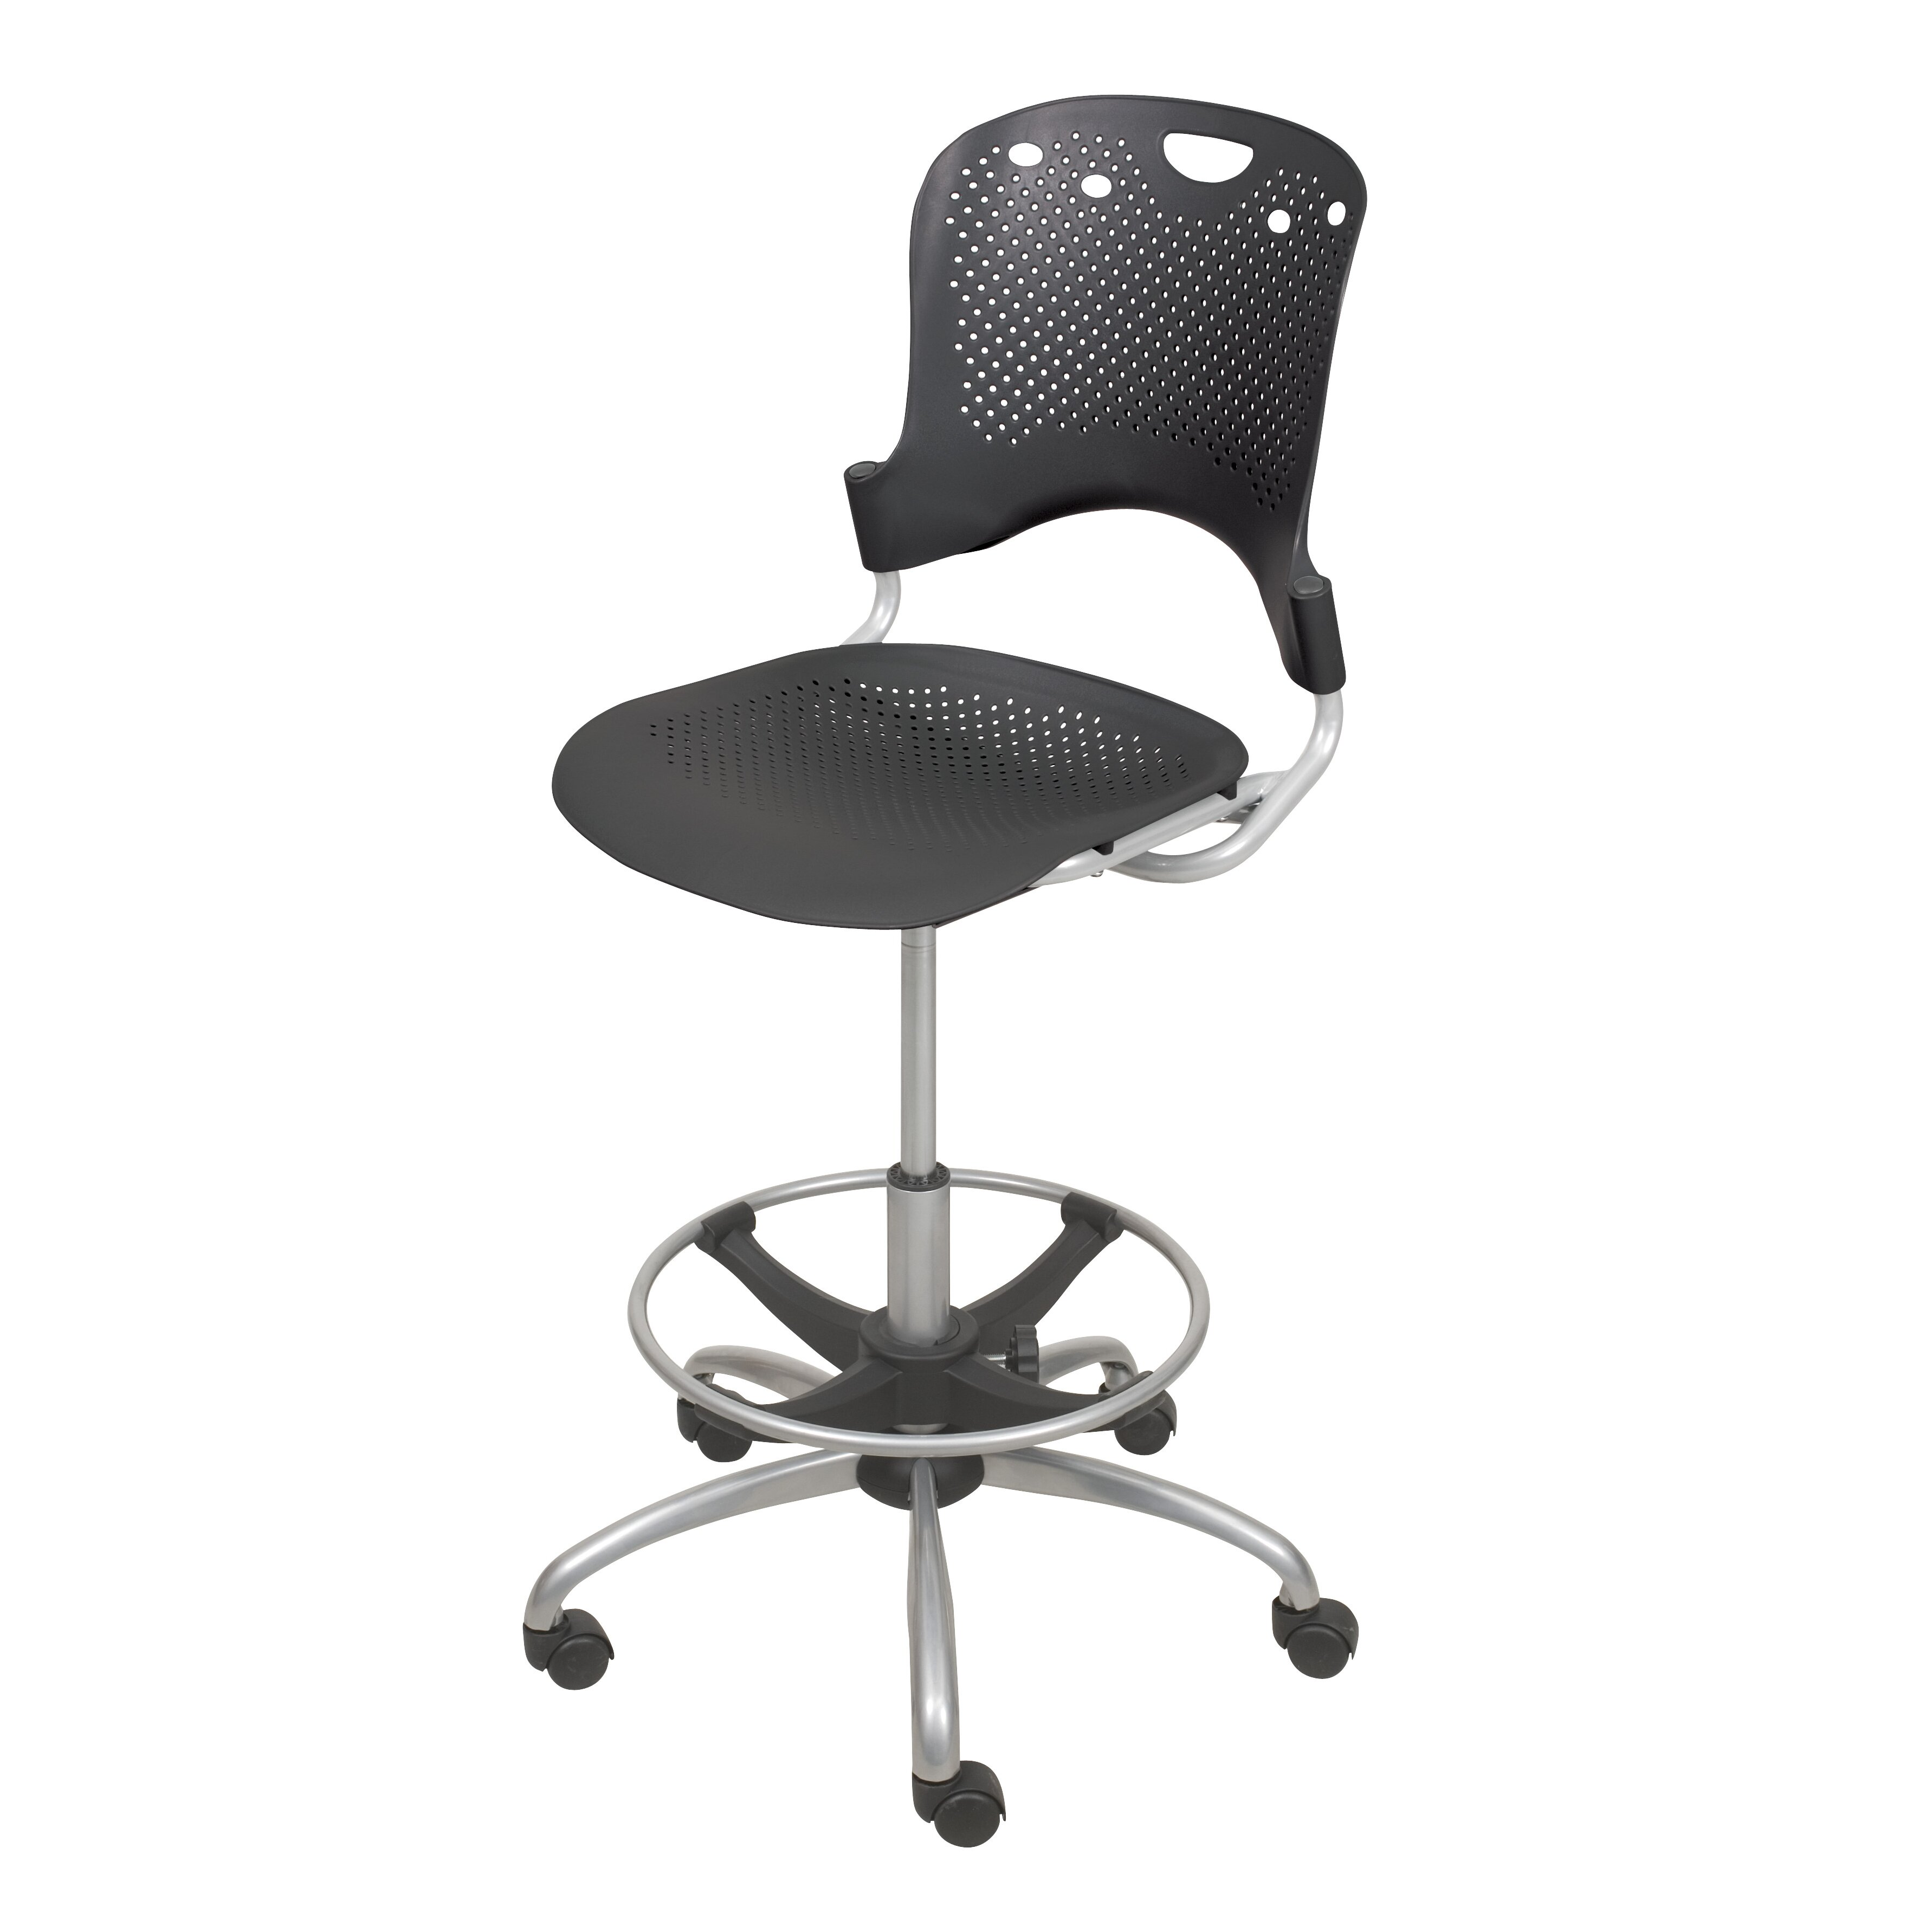 Balt Height Adjustable Circulation Drafting Chair With